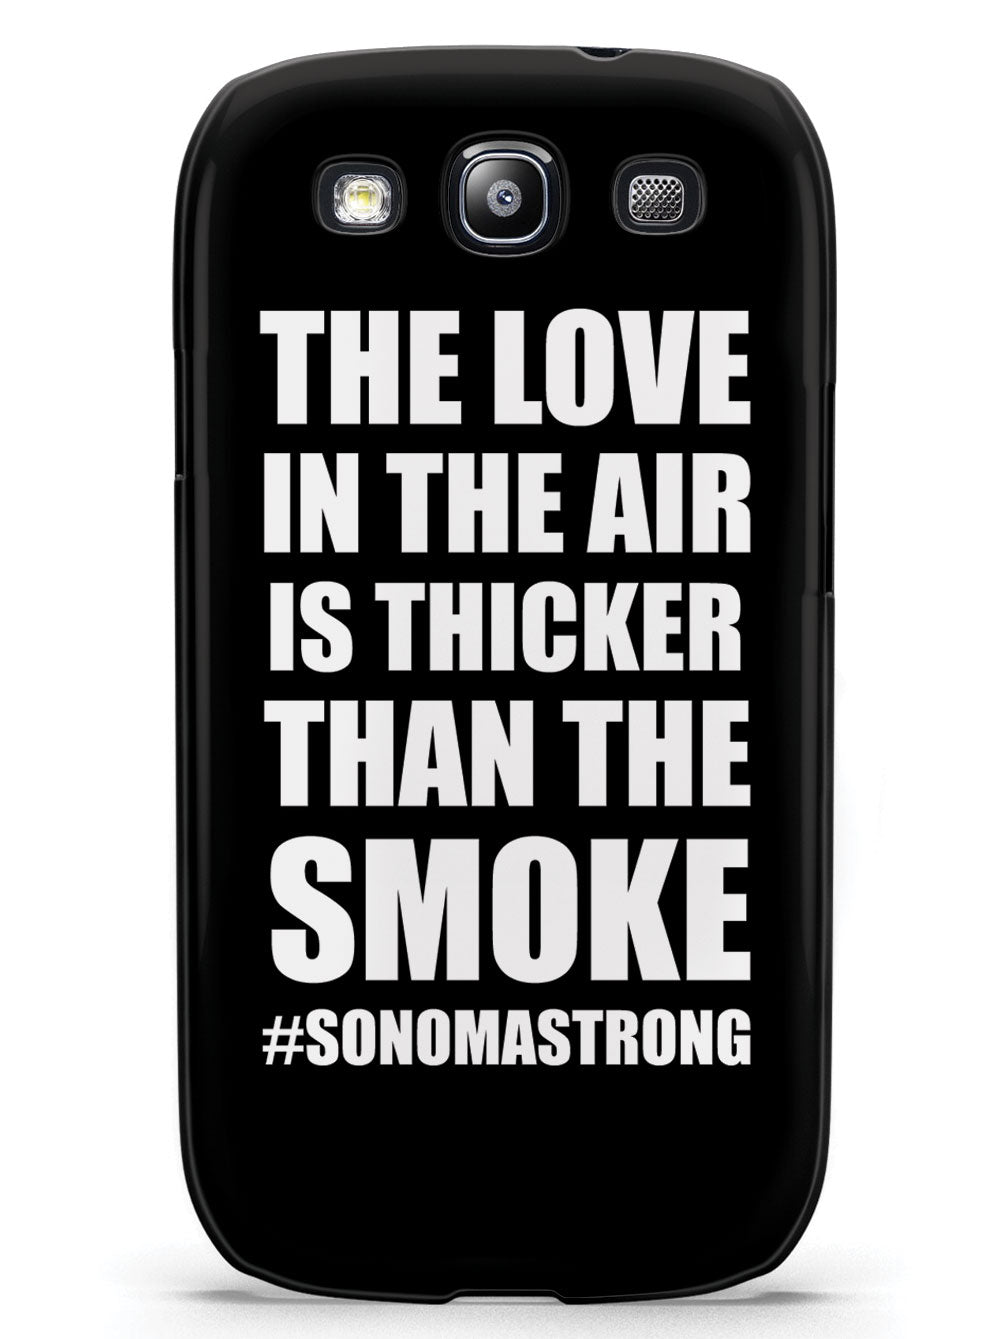 The Love In The Air Is Thicker Than The Smoke - Sonoma Strong Case